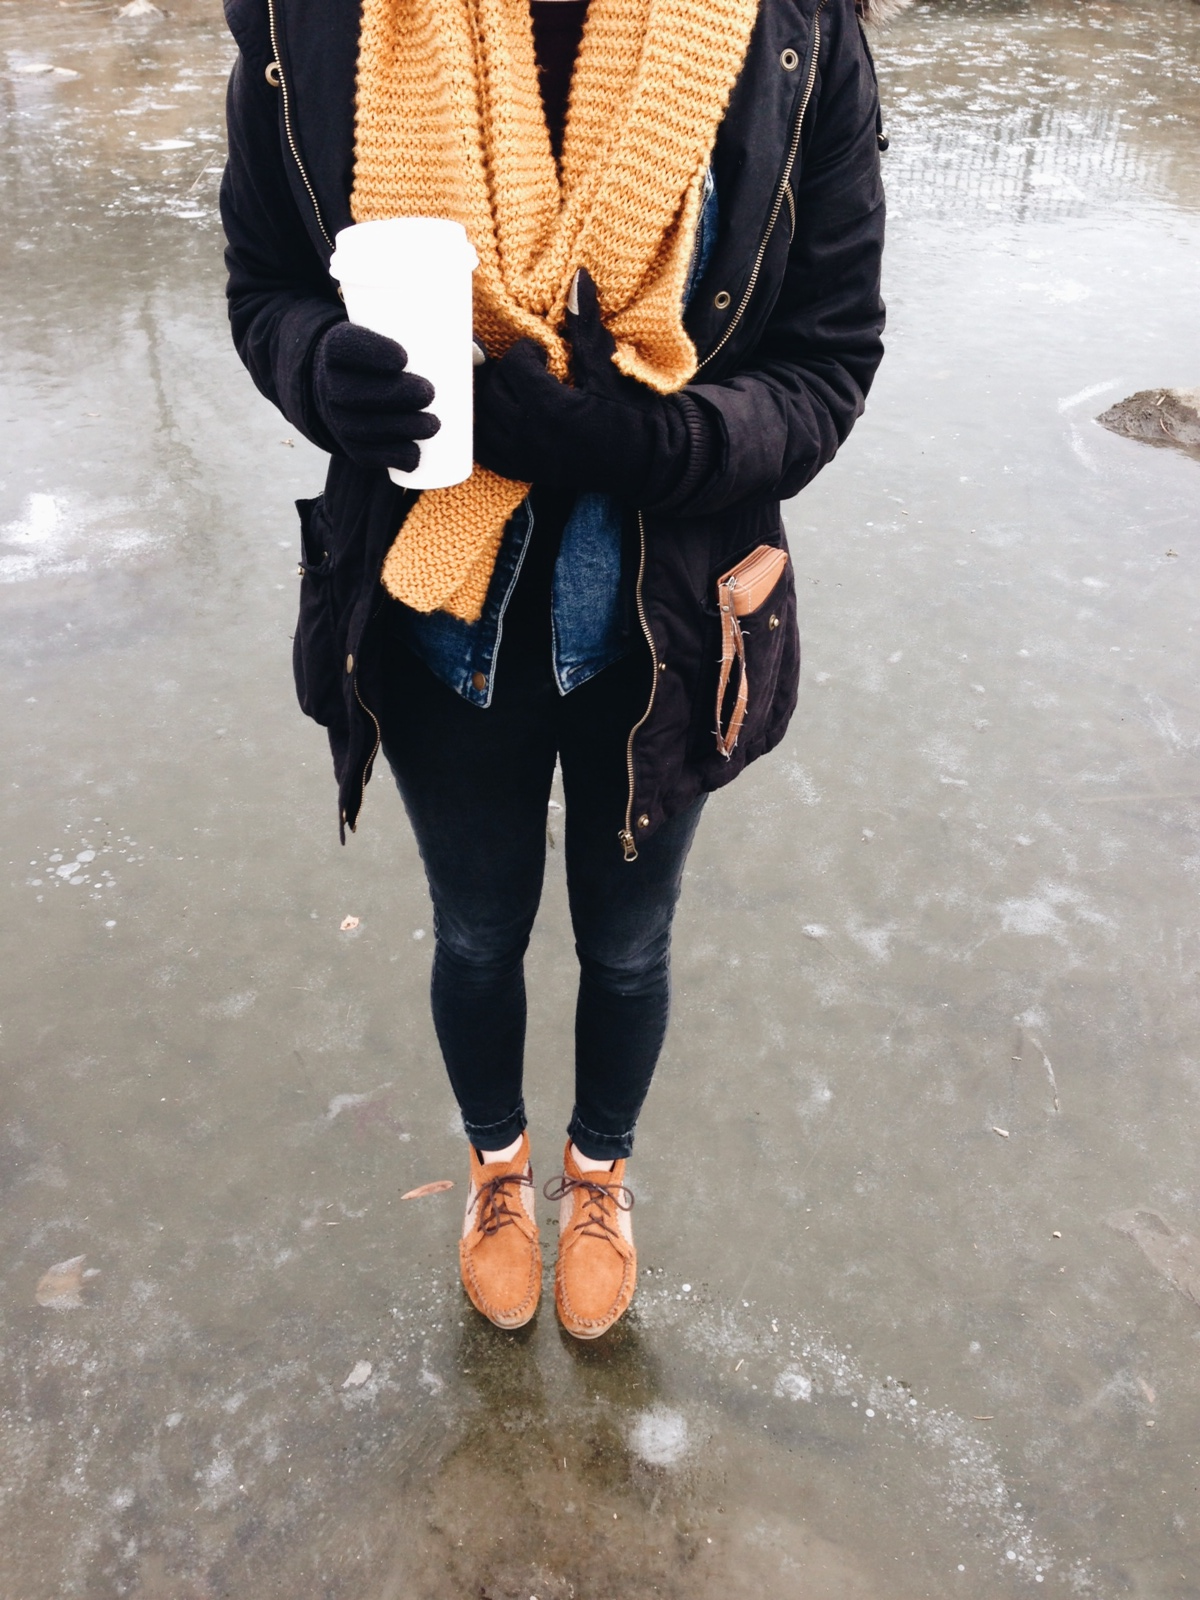 Hannah dared me to stand on a frozen pond. I was terrified, but did it anyway!